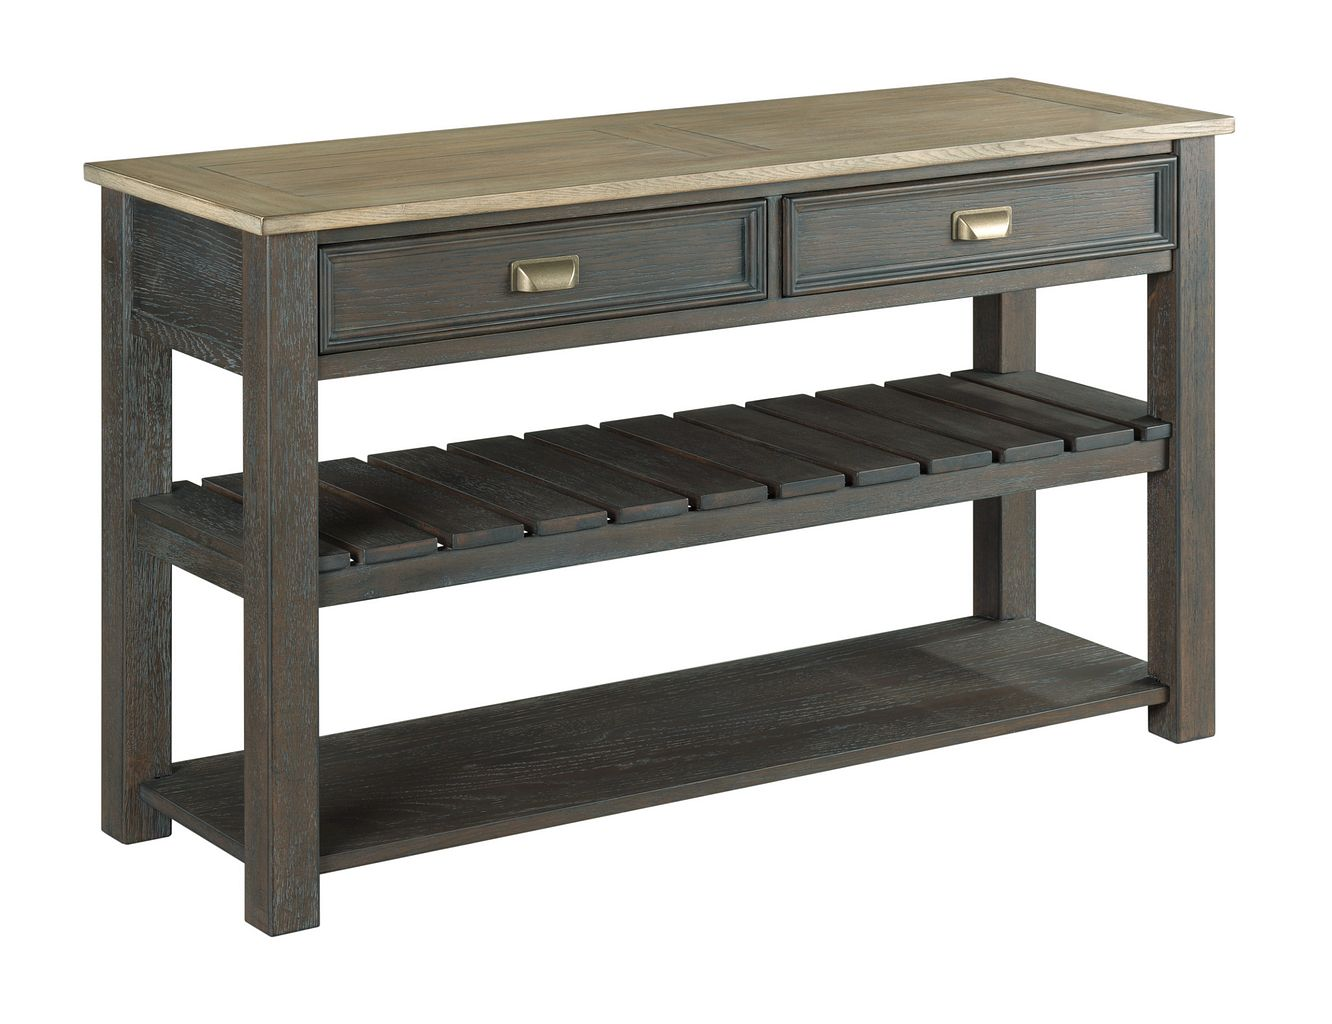 Lyle Creek Sofa Console Table by Hammary at Jacksonville Furniture Mart